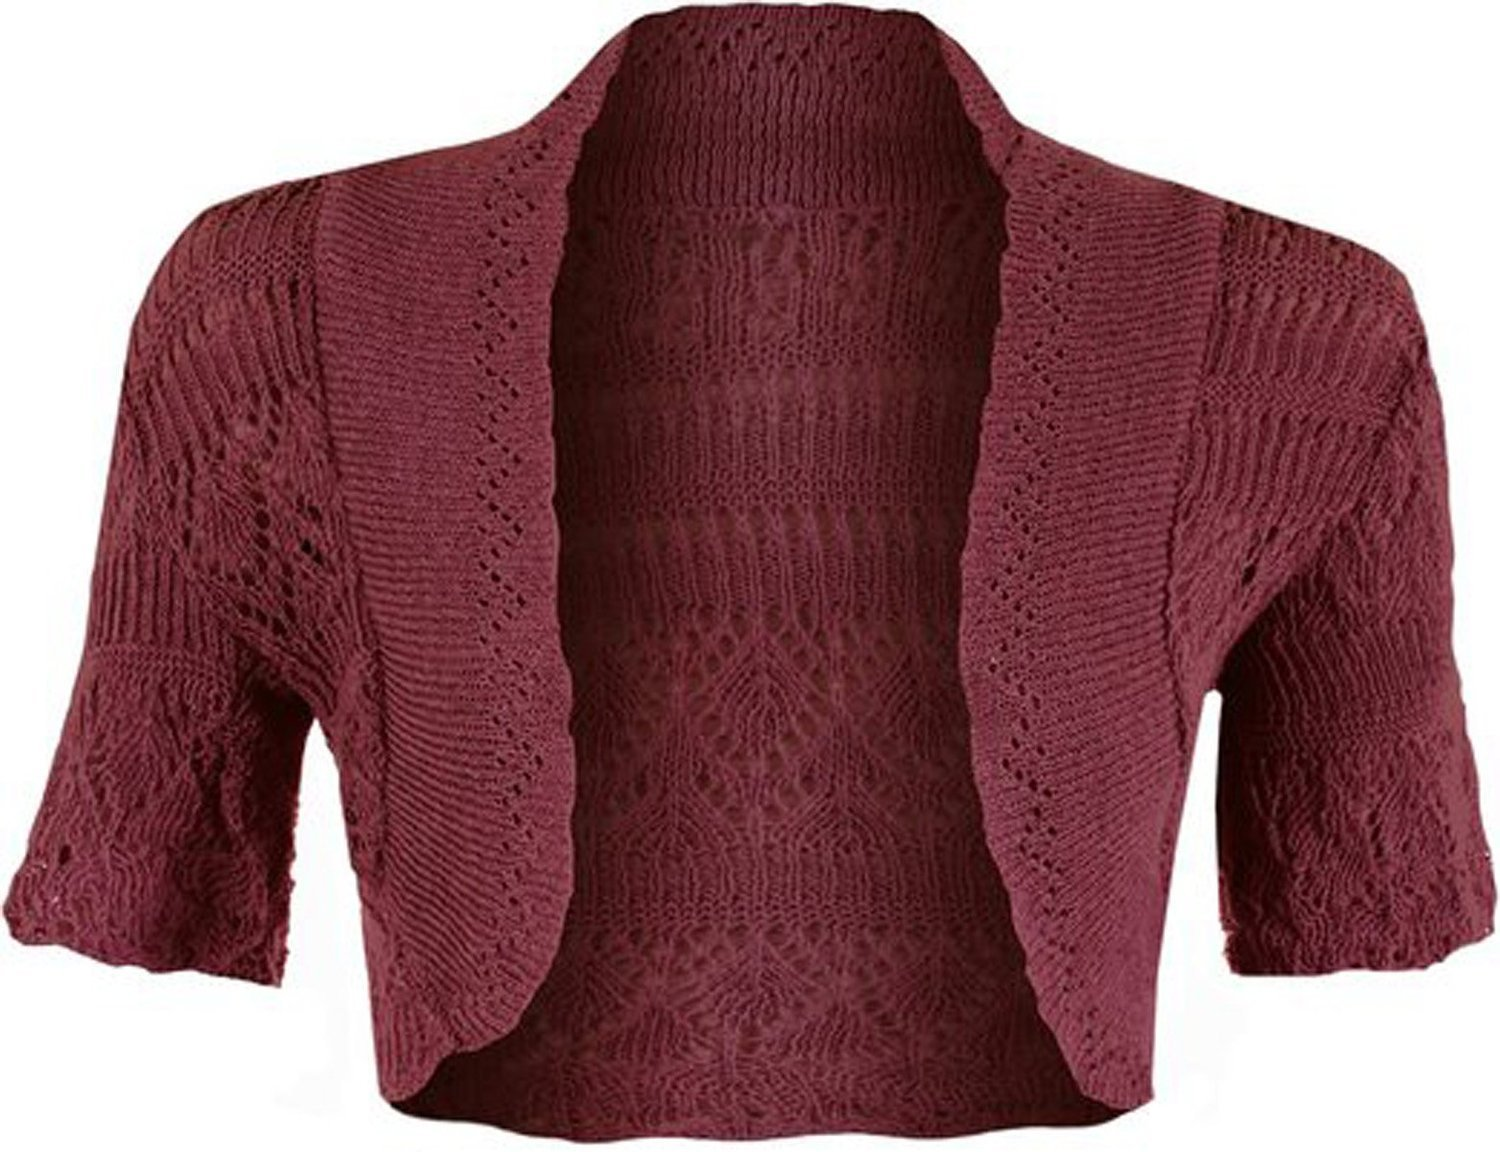 kfs collection Girls Crochet Bolero Shrug Kids Knitted Short Sleeve Cardigan